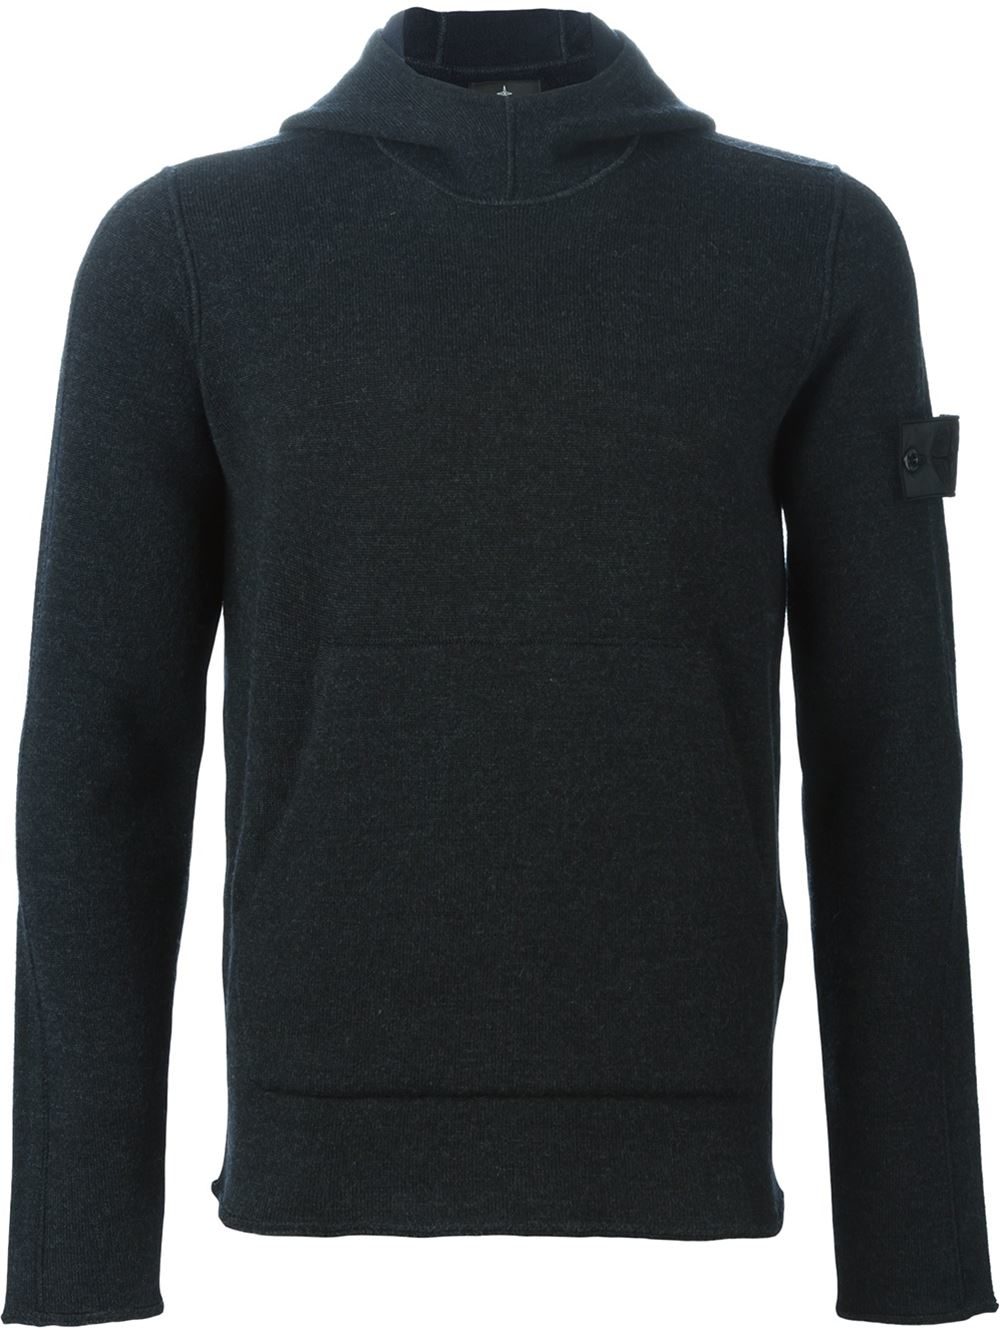 Stone island Hooded Sweater in Gray for Men (grey) - Lyst